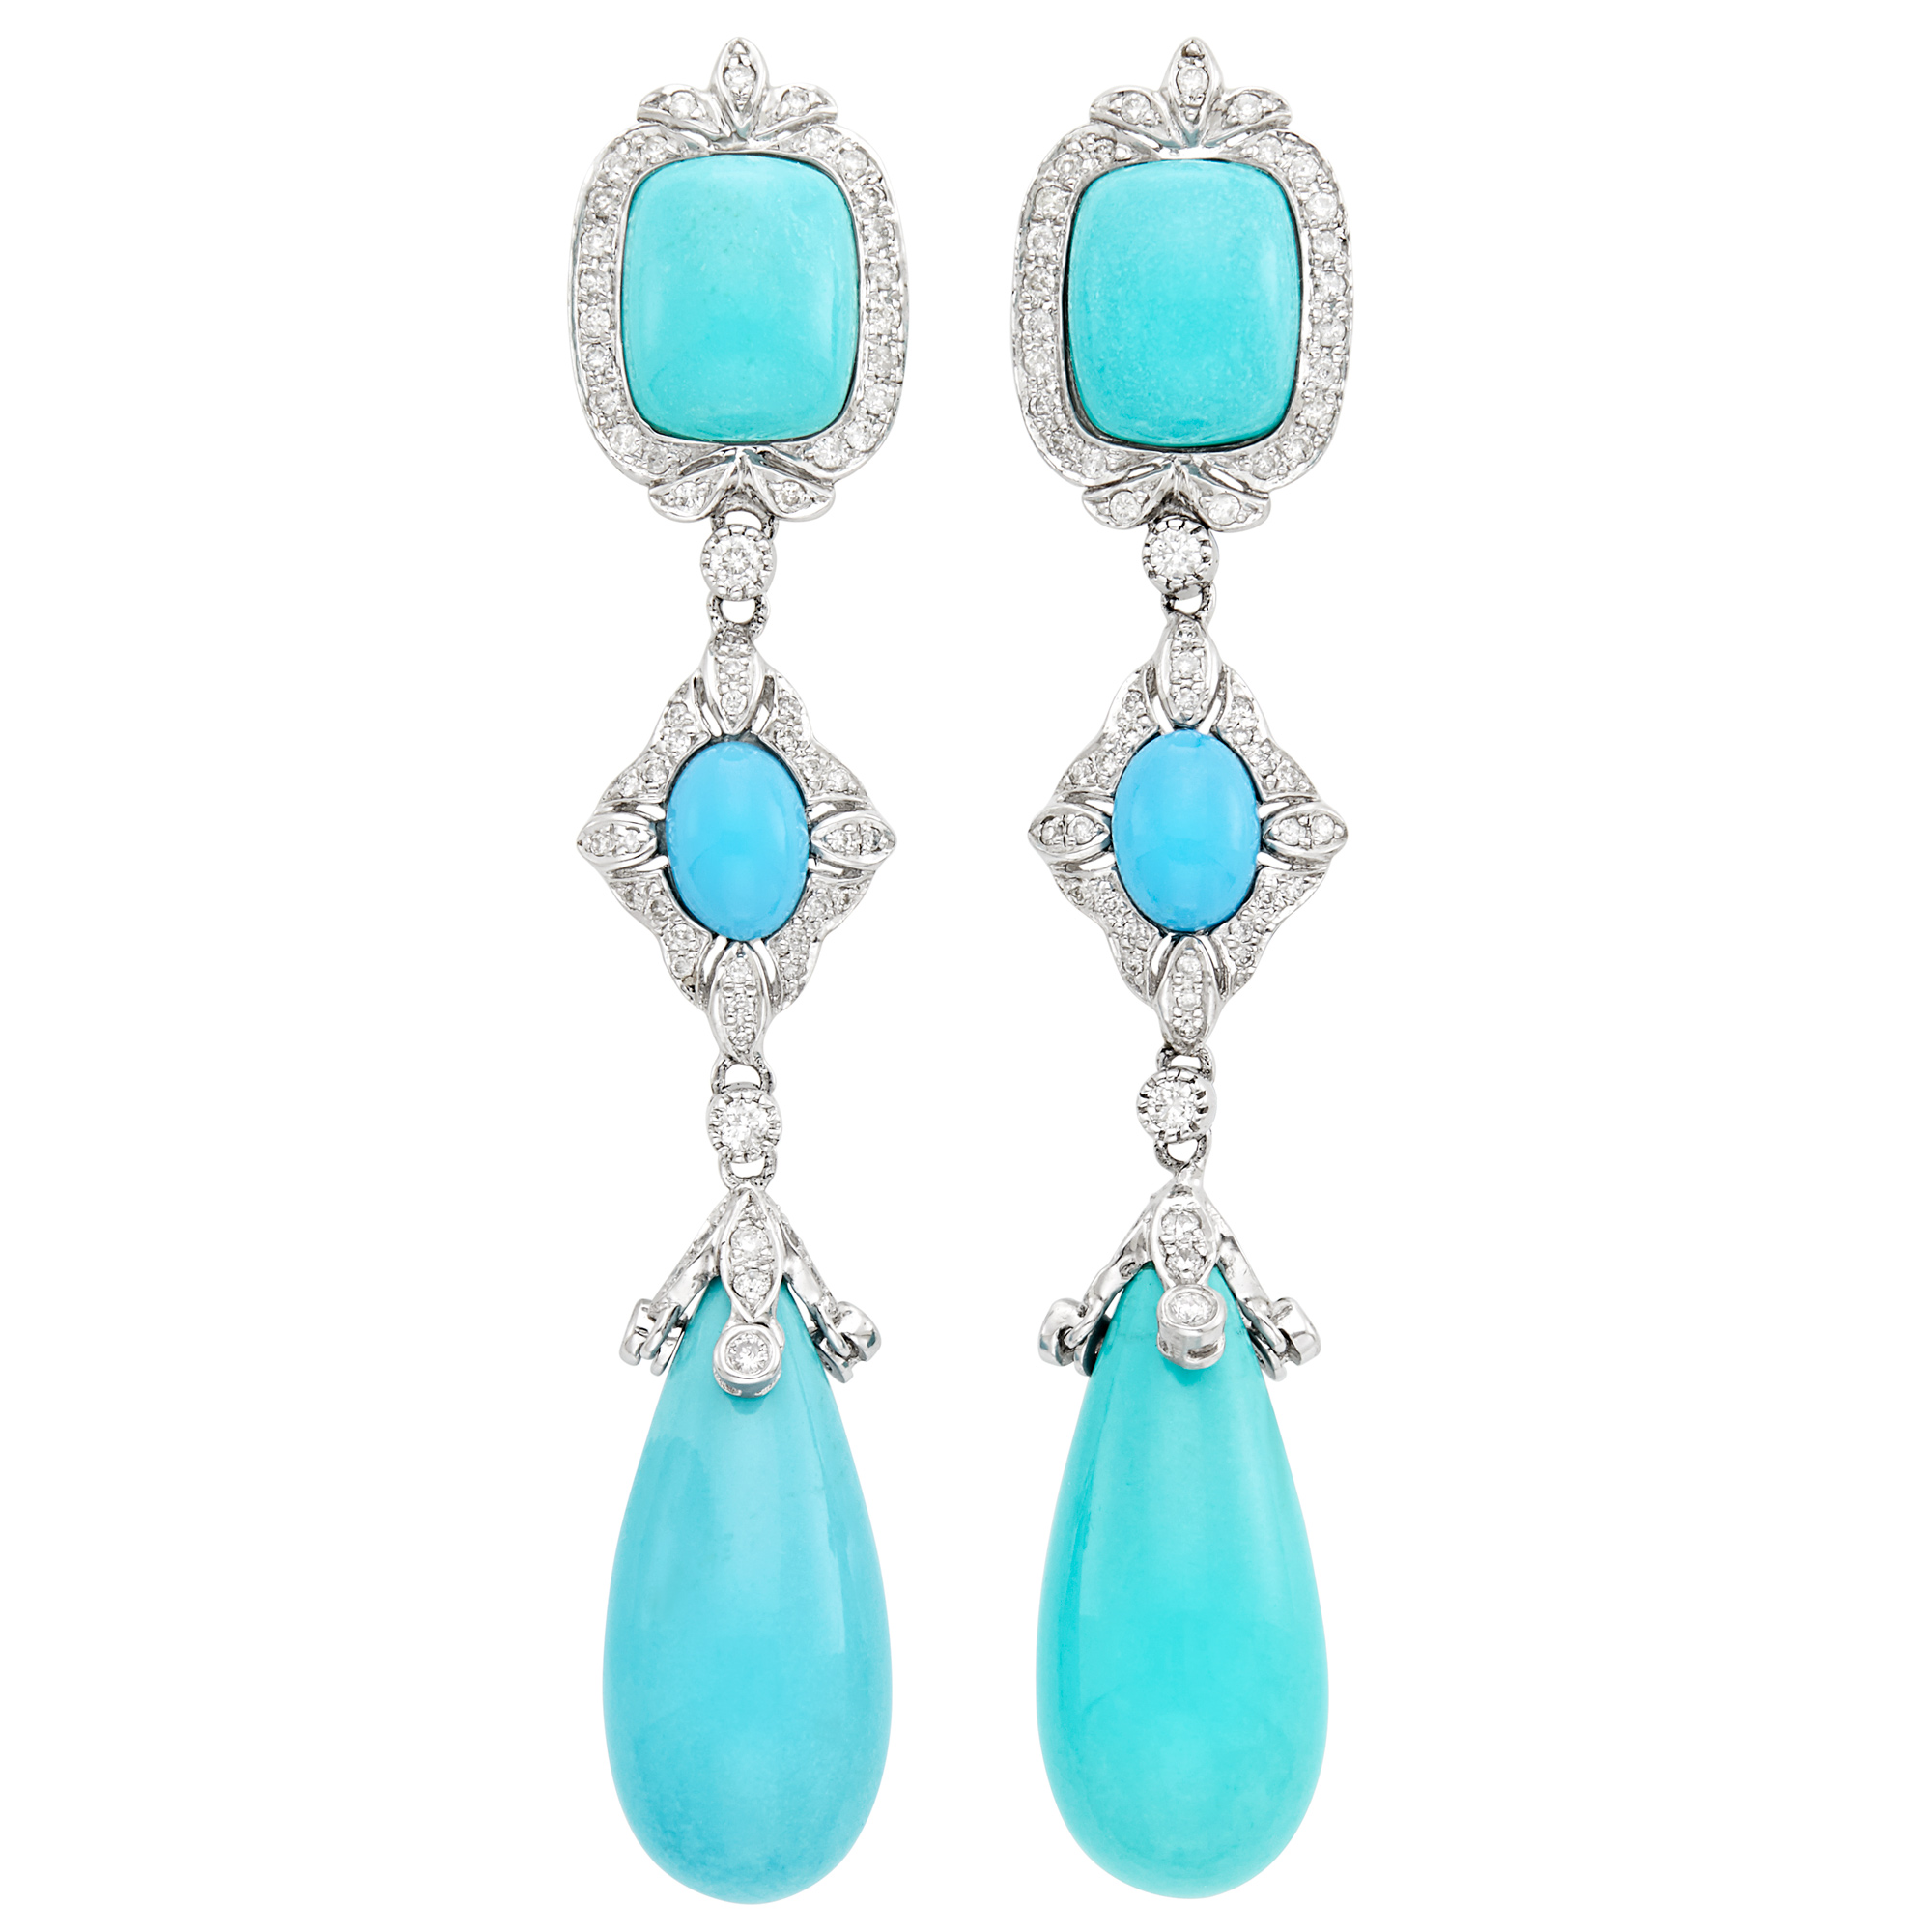 Lot image - Pair of White Gold, Turquoise and Diamond Pendant-Earrings